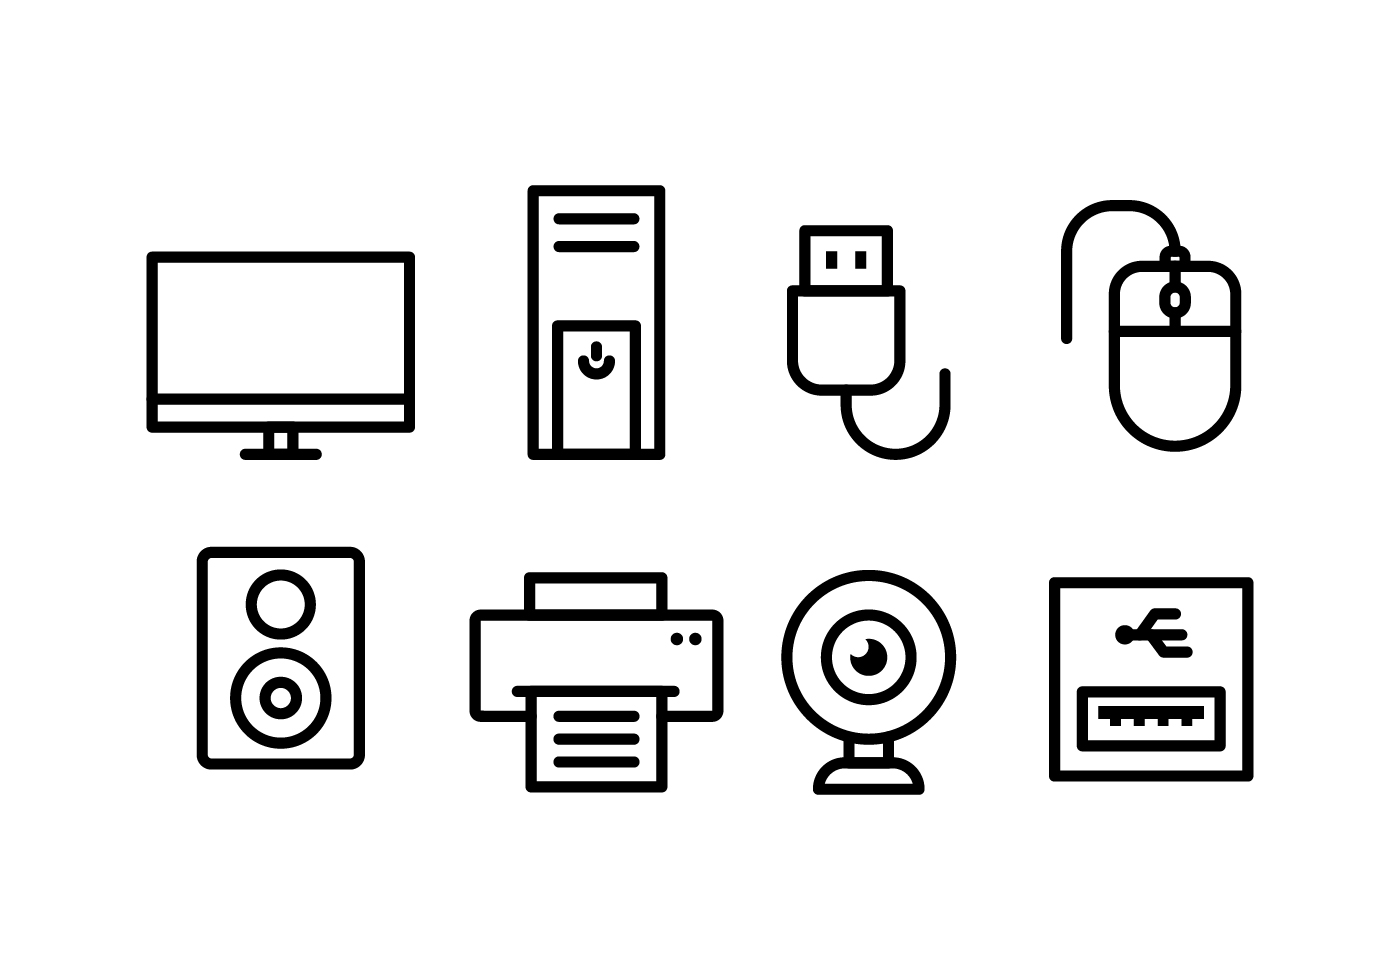 Computer Accessories Icon Set Download Free Vector Art Stock Electrical Symbol Isolated On A White Background Graphics Images